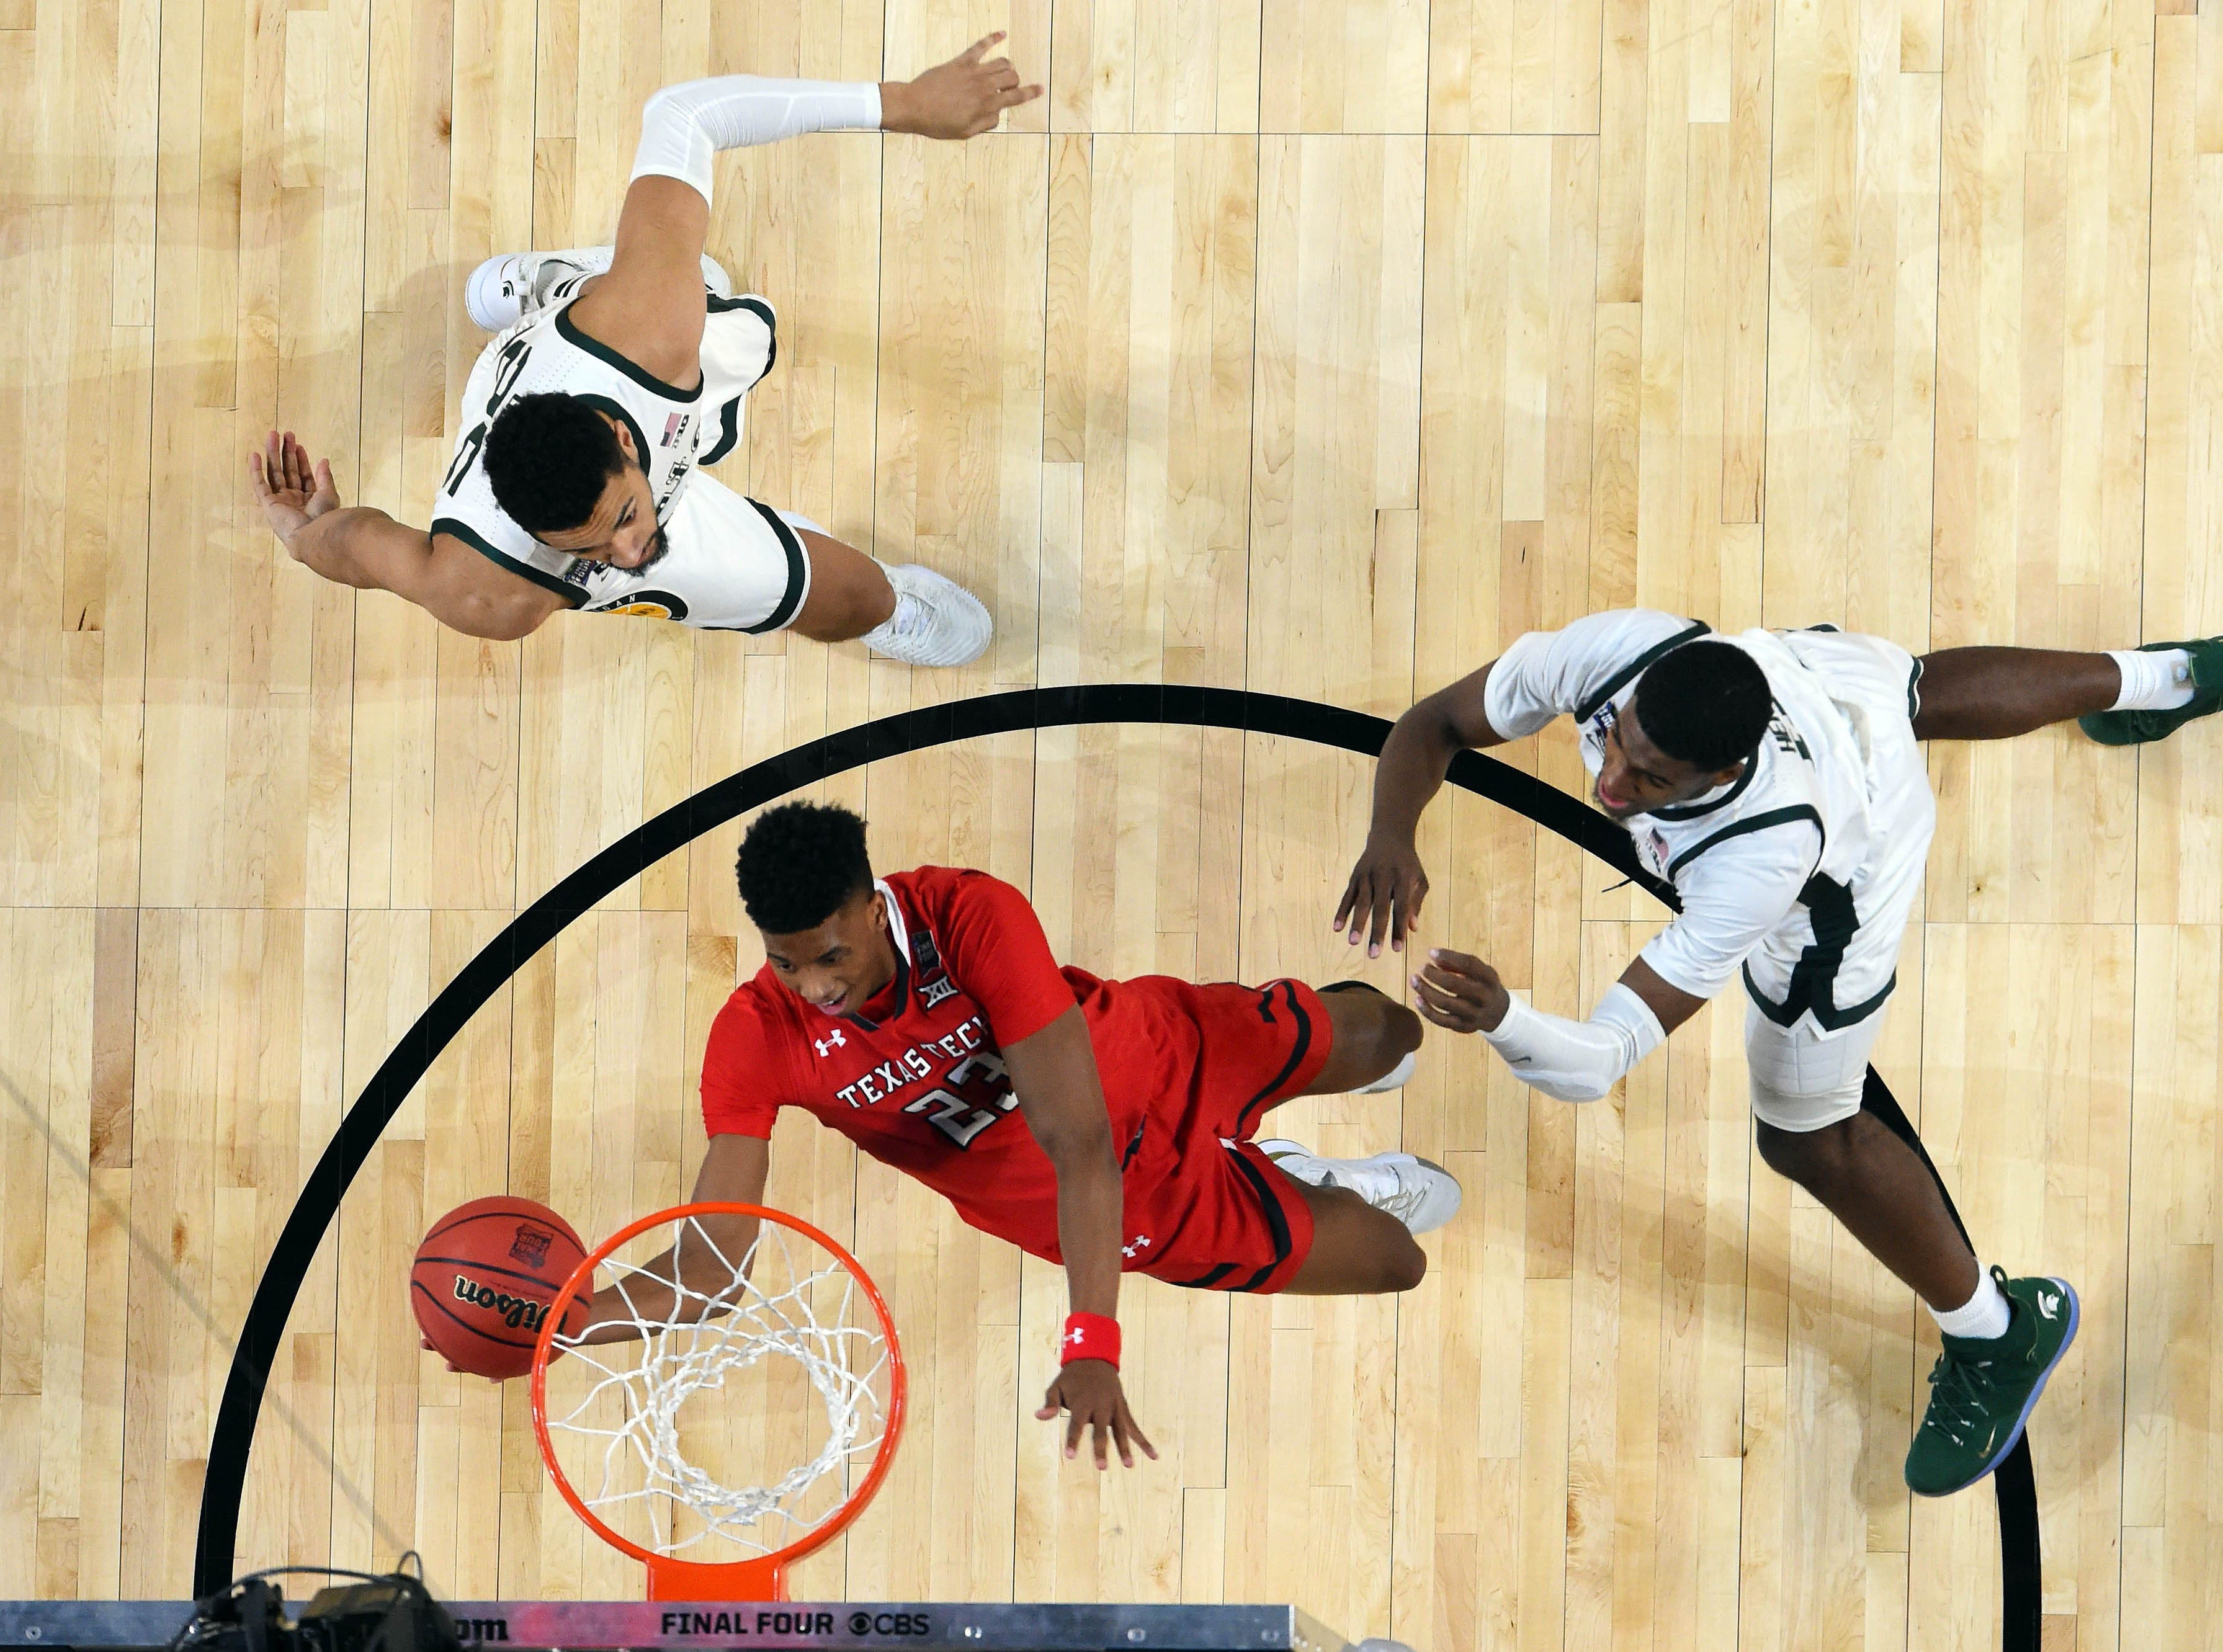 Apr 6, 2019; Minneapolis, MN, USA; Texas Tech Red Raiders guard Jarrett Culver (23) shoots a lay up as Michigan State Spartans forward Aaron Henry (bottom) and forward Kenny Goins (top right) look on during the first half in the semifinals of the 2019 men's Final Four at US Bank Stadium. Mandatory Credit: Bob Donnan-USA TODAY Sports